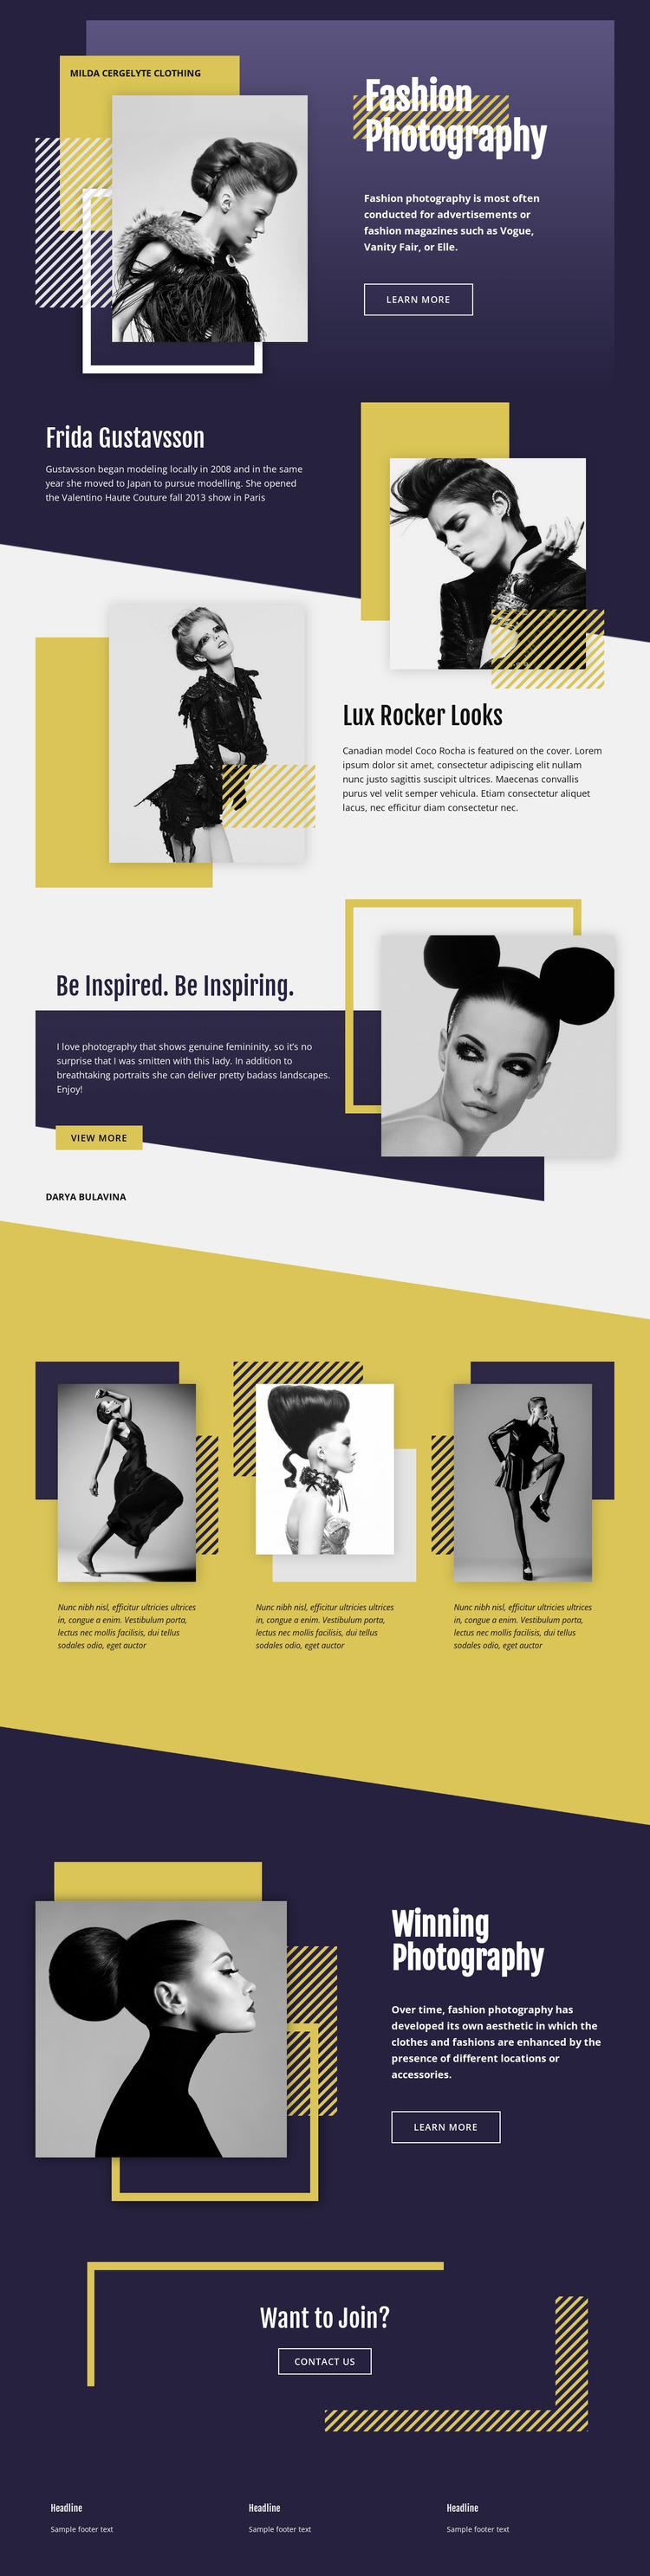 Fashion Photography Overlapping Website Mockup